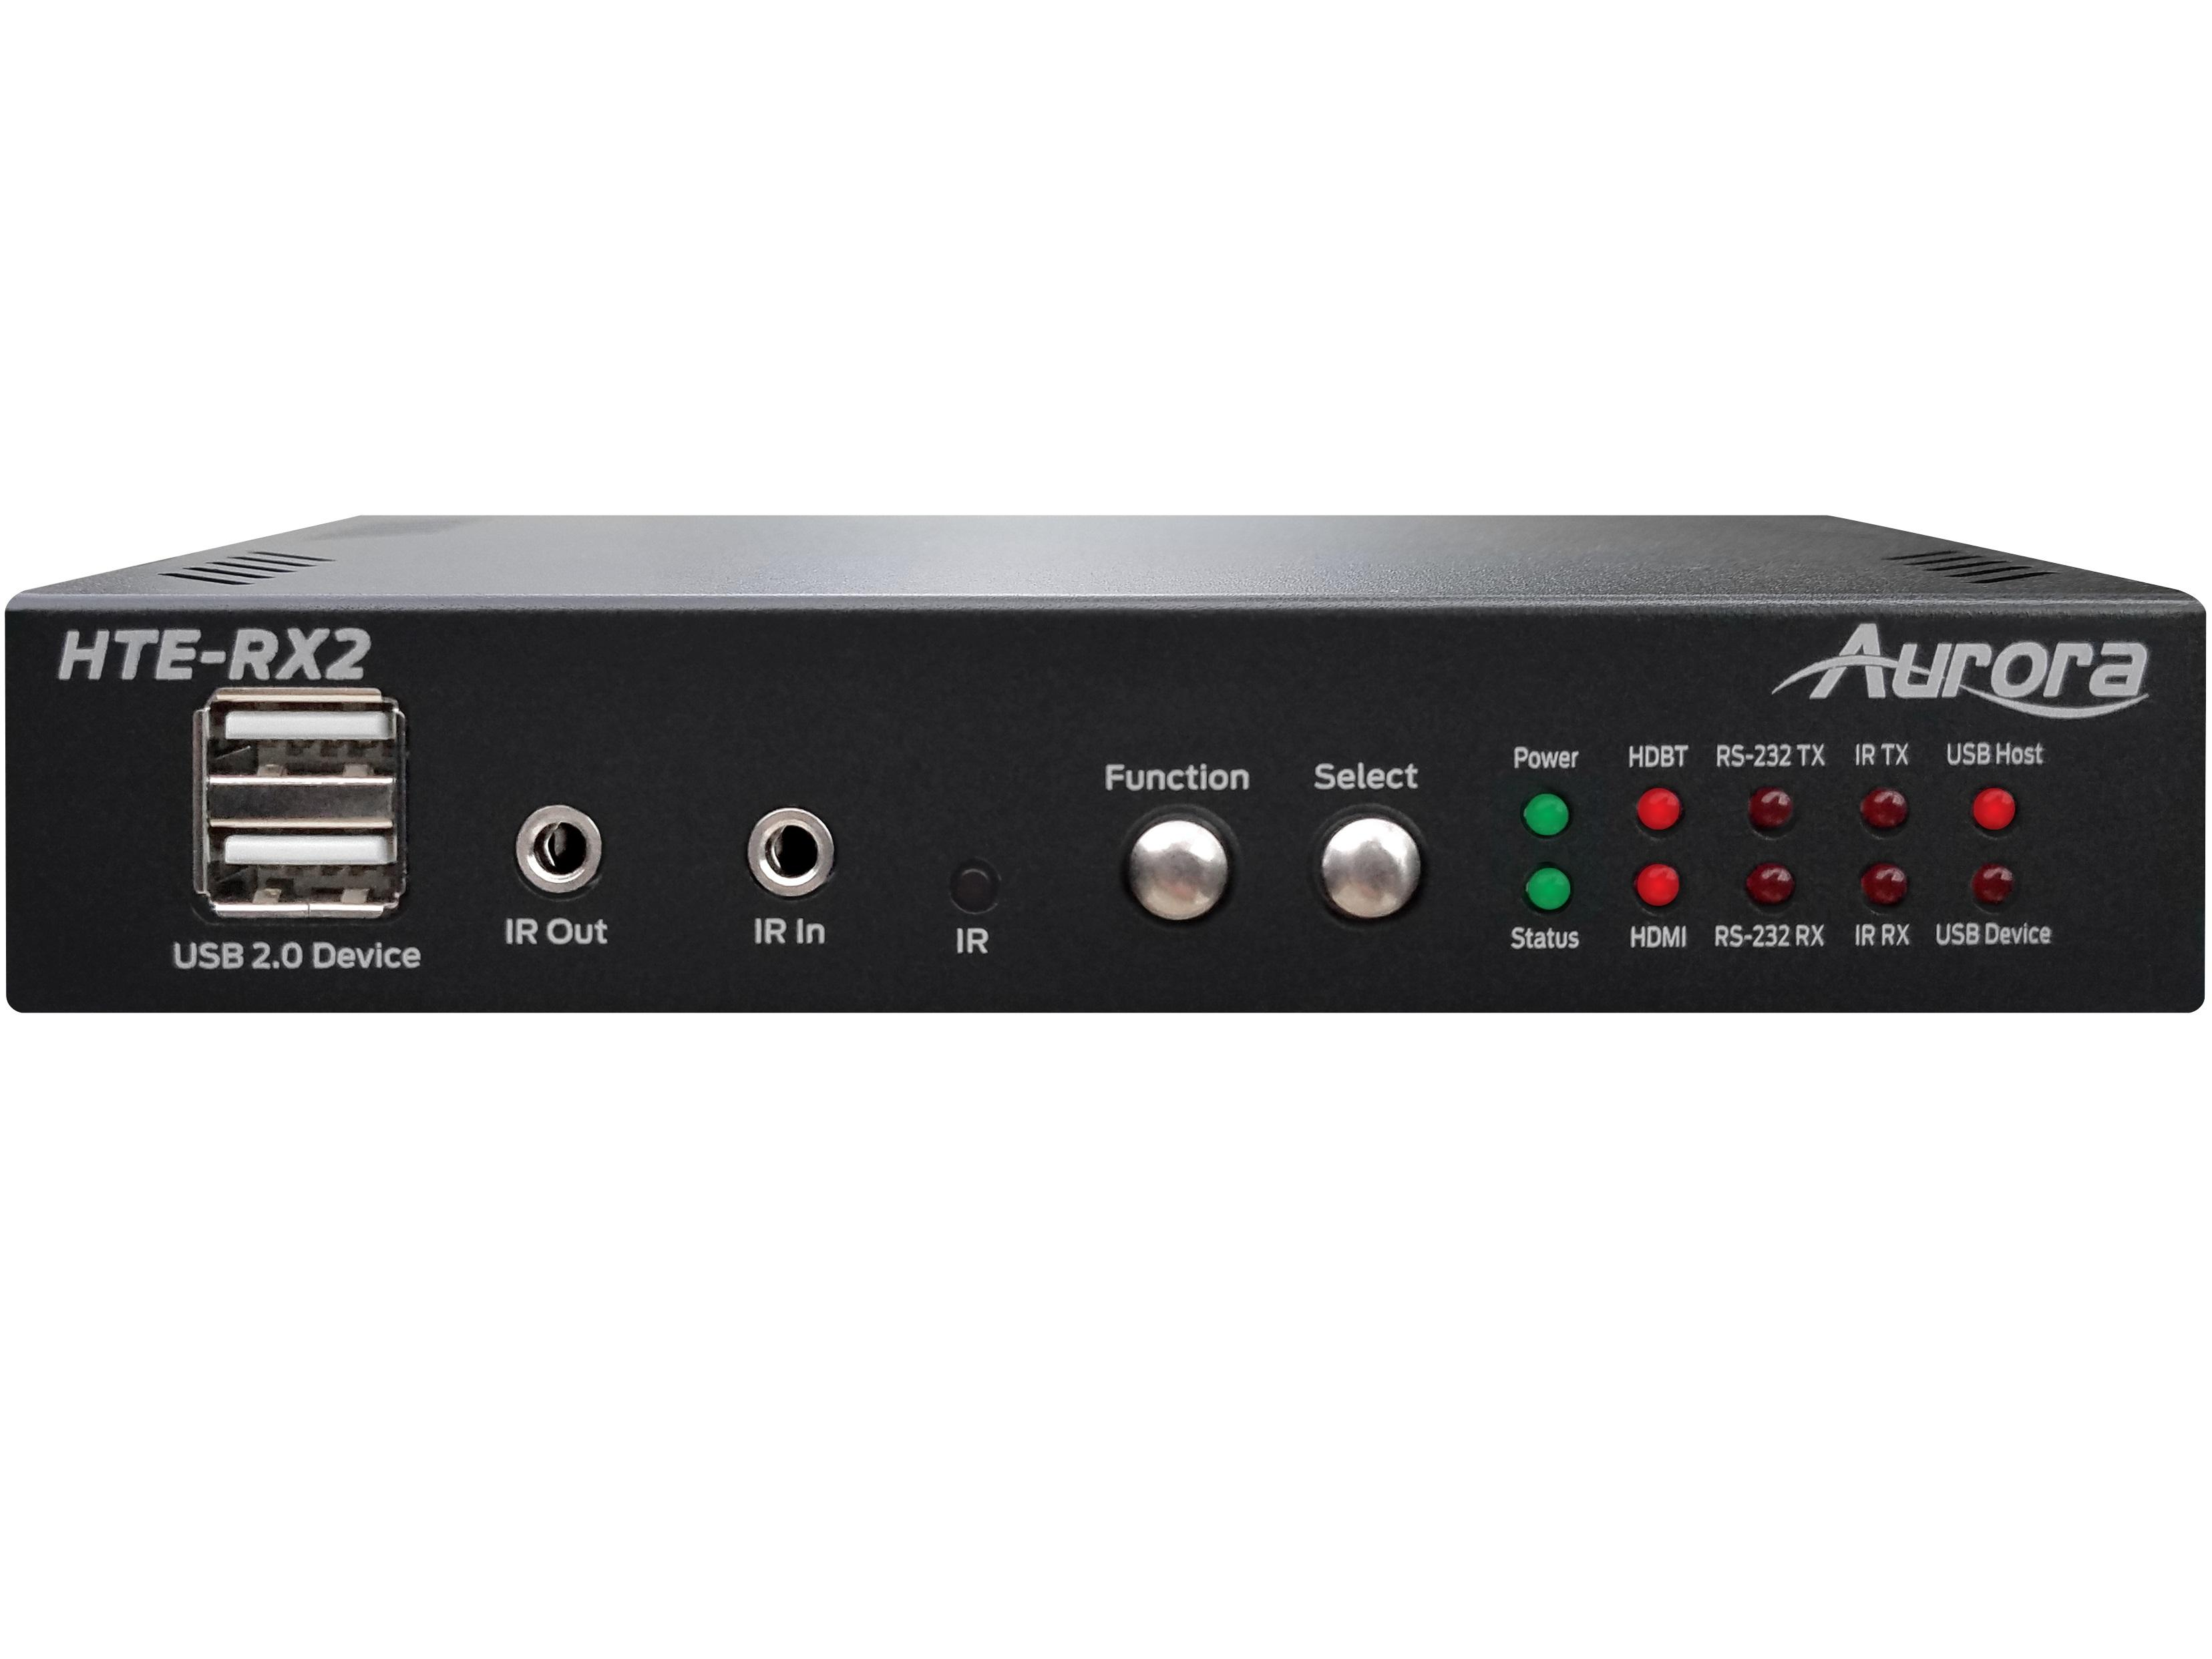 Aurora Multimedia HTE-RX2 4K60 HDR 2xHDMI/HDBaseT 2.0 Extender (Receiver) with Dante/USB/IP/IR up to 100m/330ft (Black)